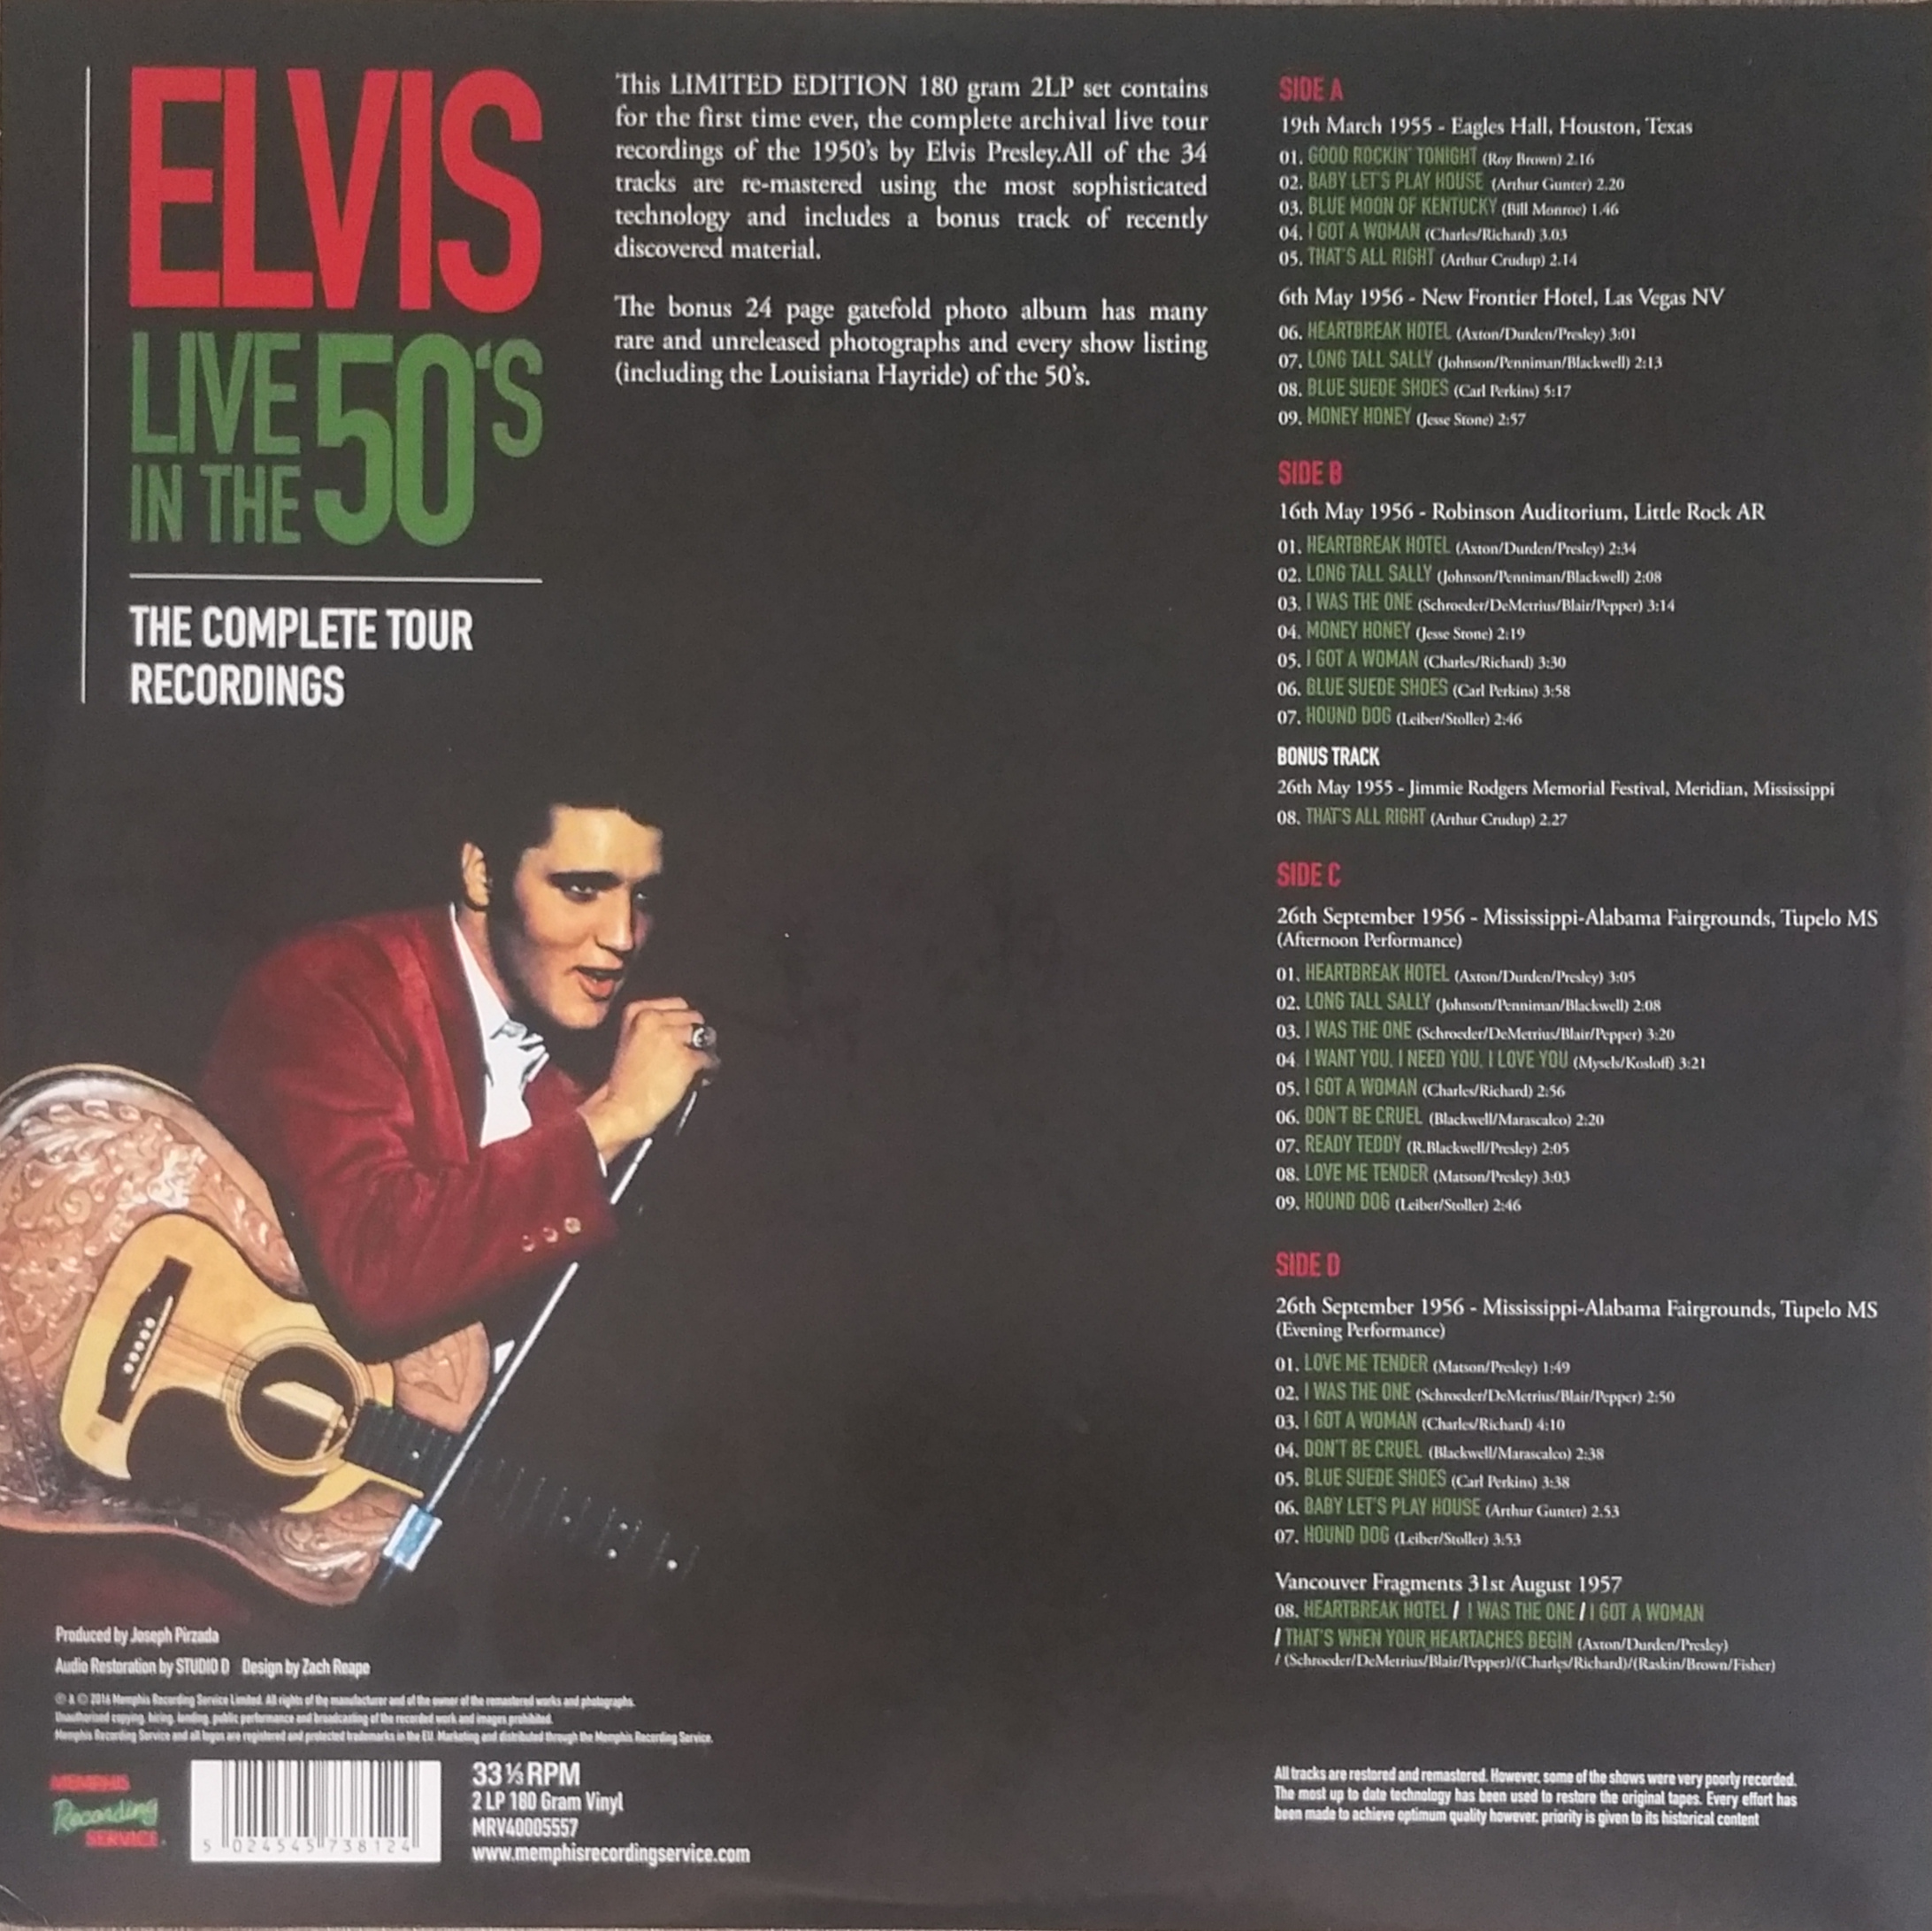 LIVE IN THE 50's (The Complete Tour Recordings) Liveinthe50s-thecomplfyki3